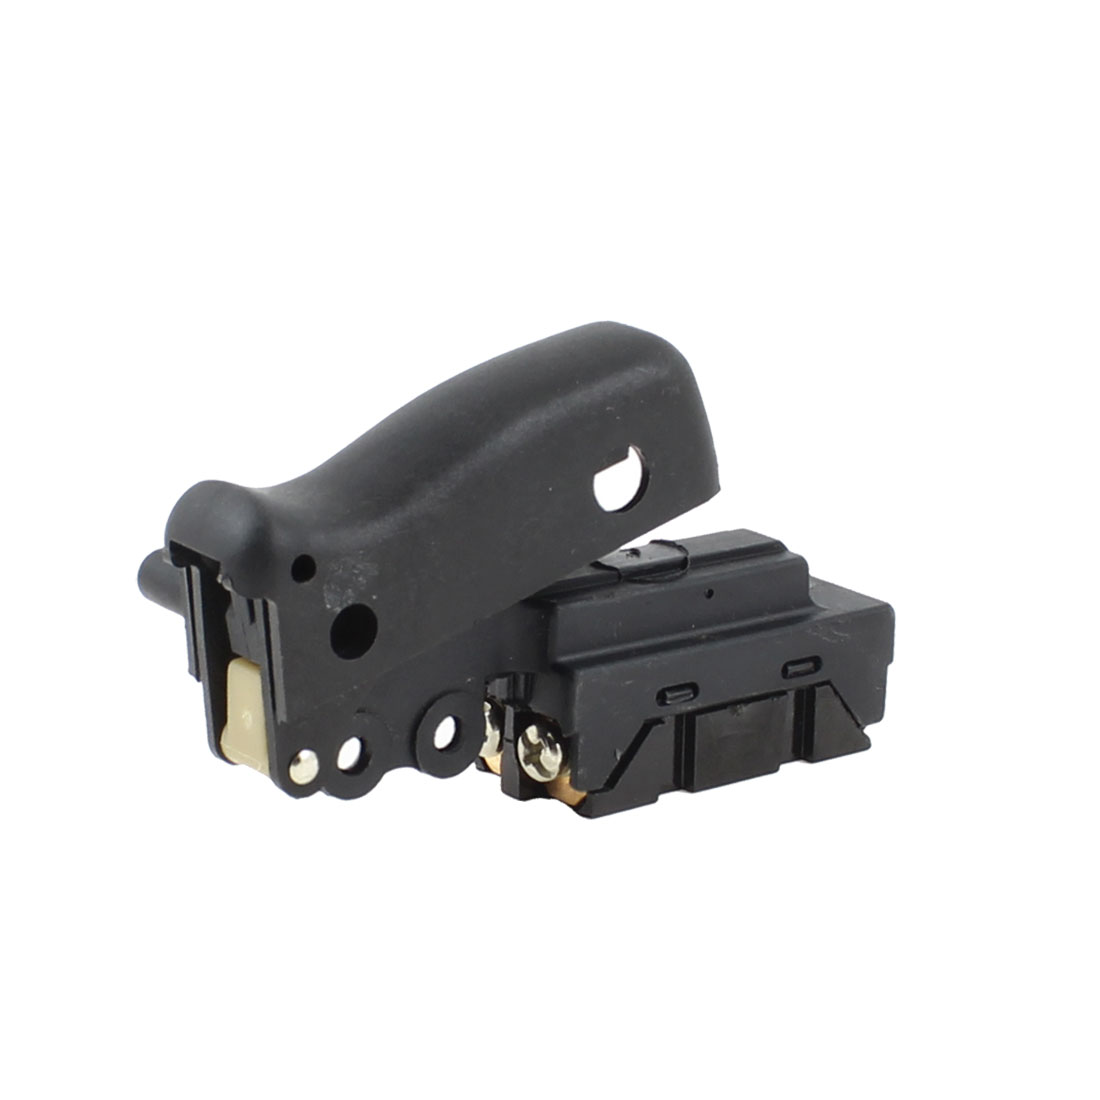 AC 250V/10A 125V/22A DPST NO Manual Lock on Electric Trigger Switch